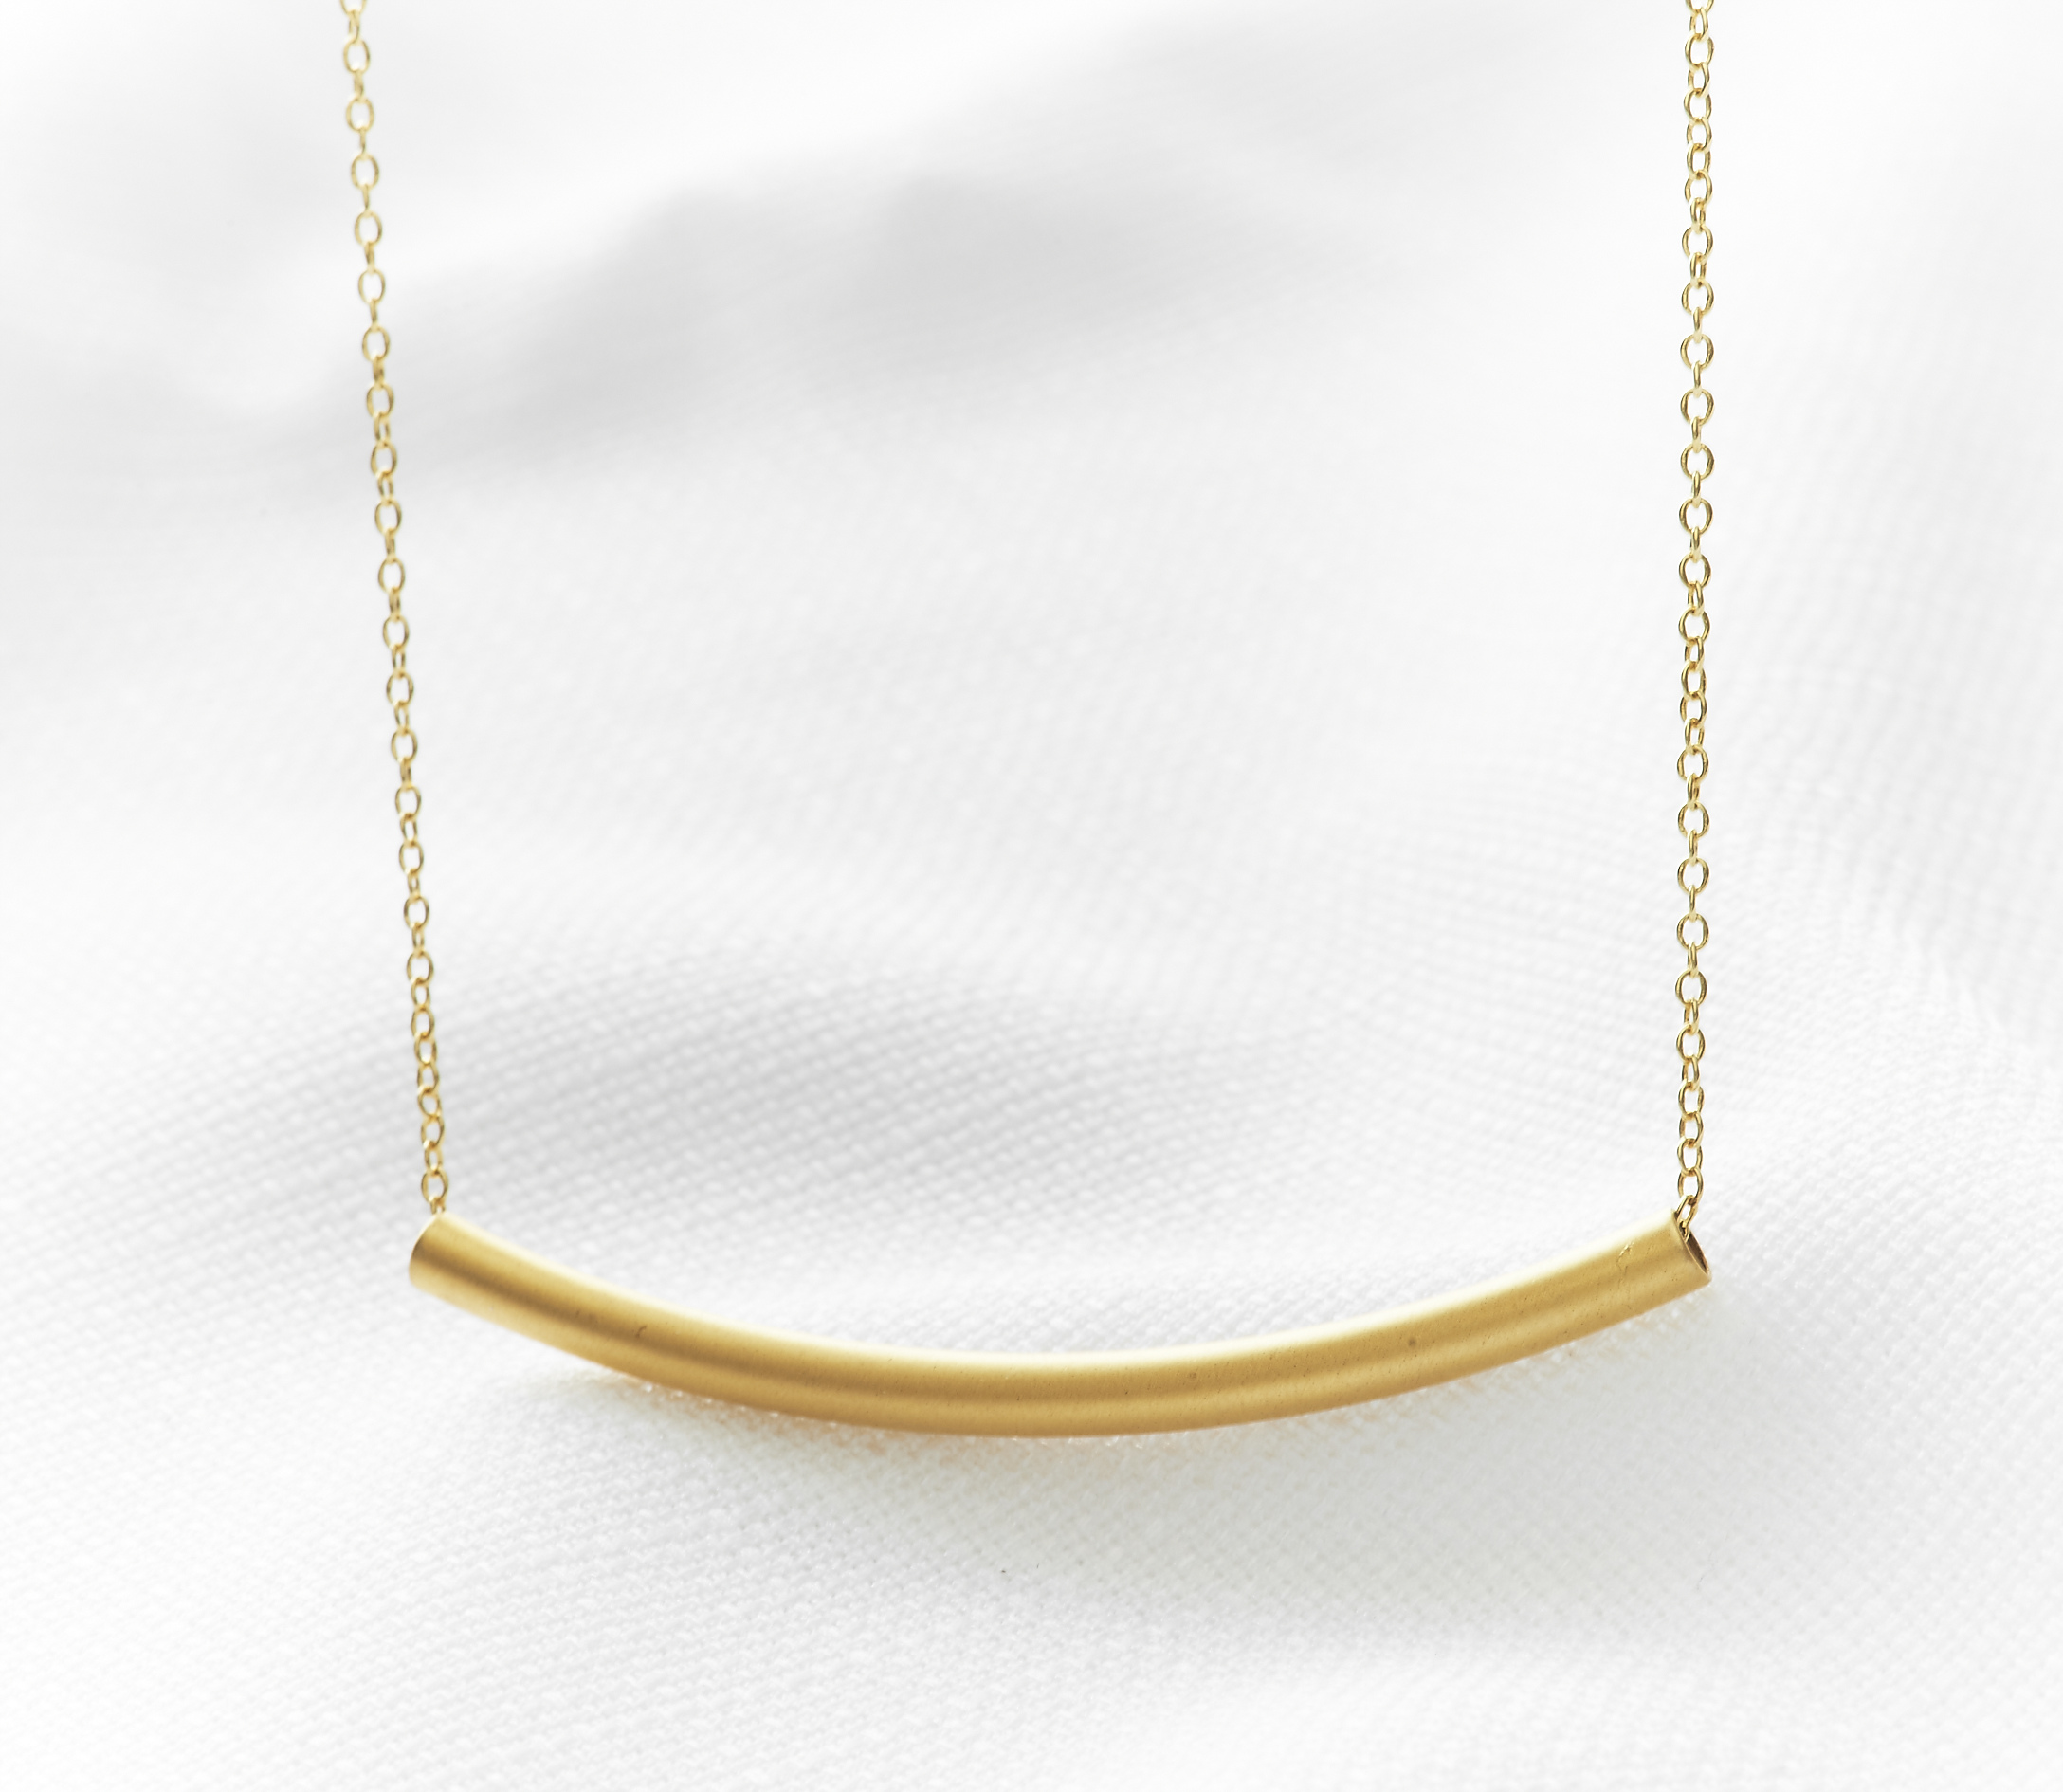 79af60af6e8 Gold Bar Necklace